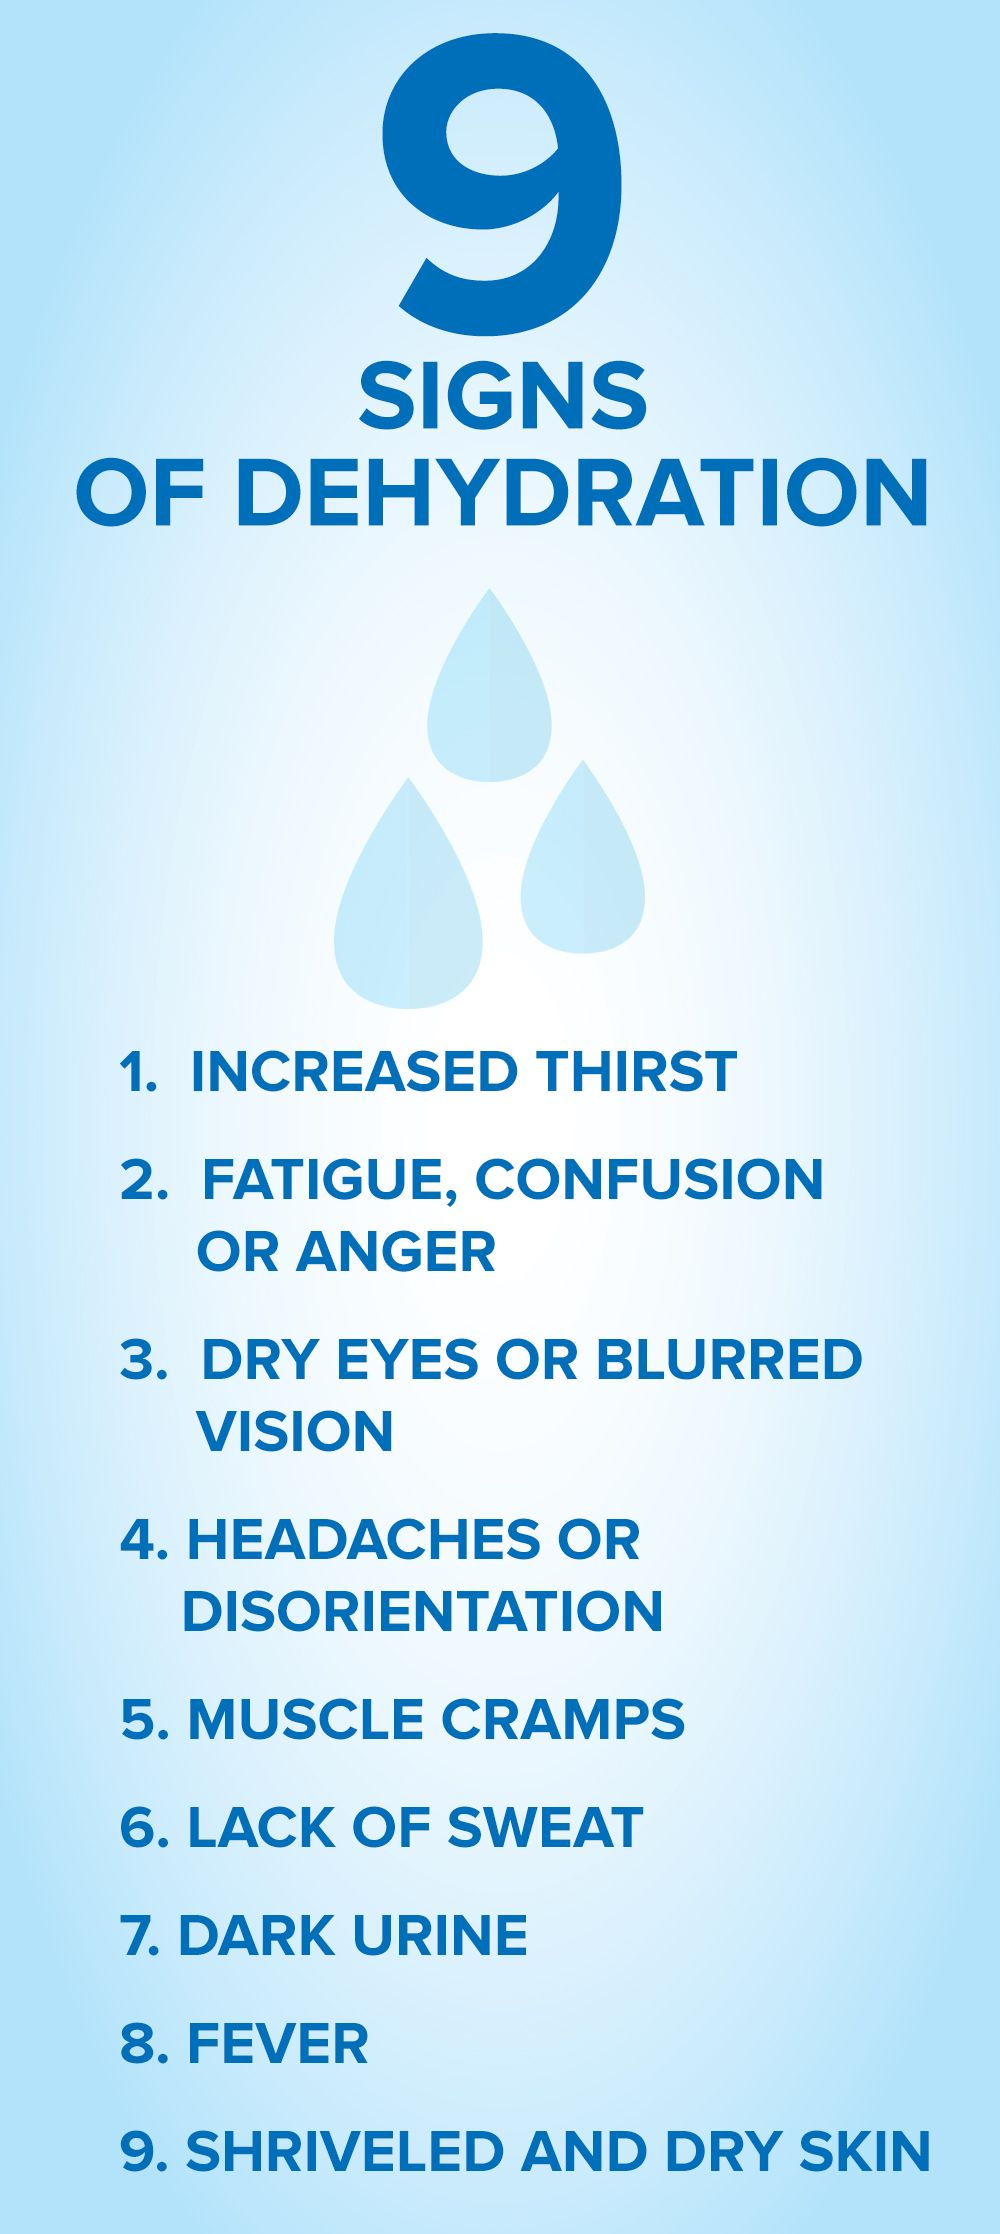 How Do I Know If I'm Dehydrated? The Symptoms You Should. Nerve Damage Signs. Neurodiversity Signs. Emergency Equipment Signs. Plan Signs. Dentist Signs. Dog Body Language Signs. Glandular Fever Signs. Medical Centre Signs Of Stroke